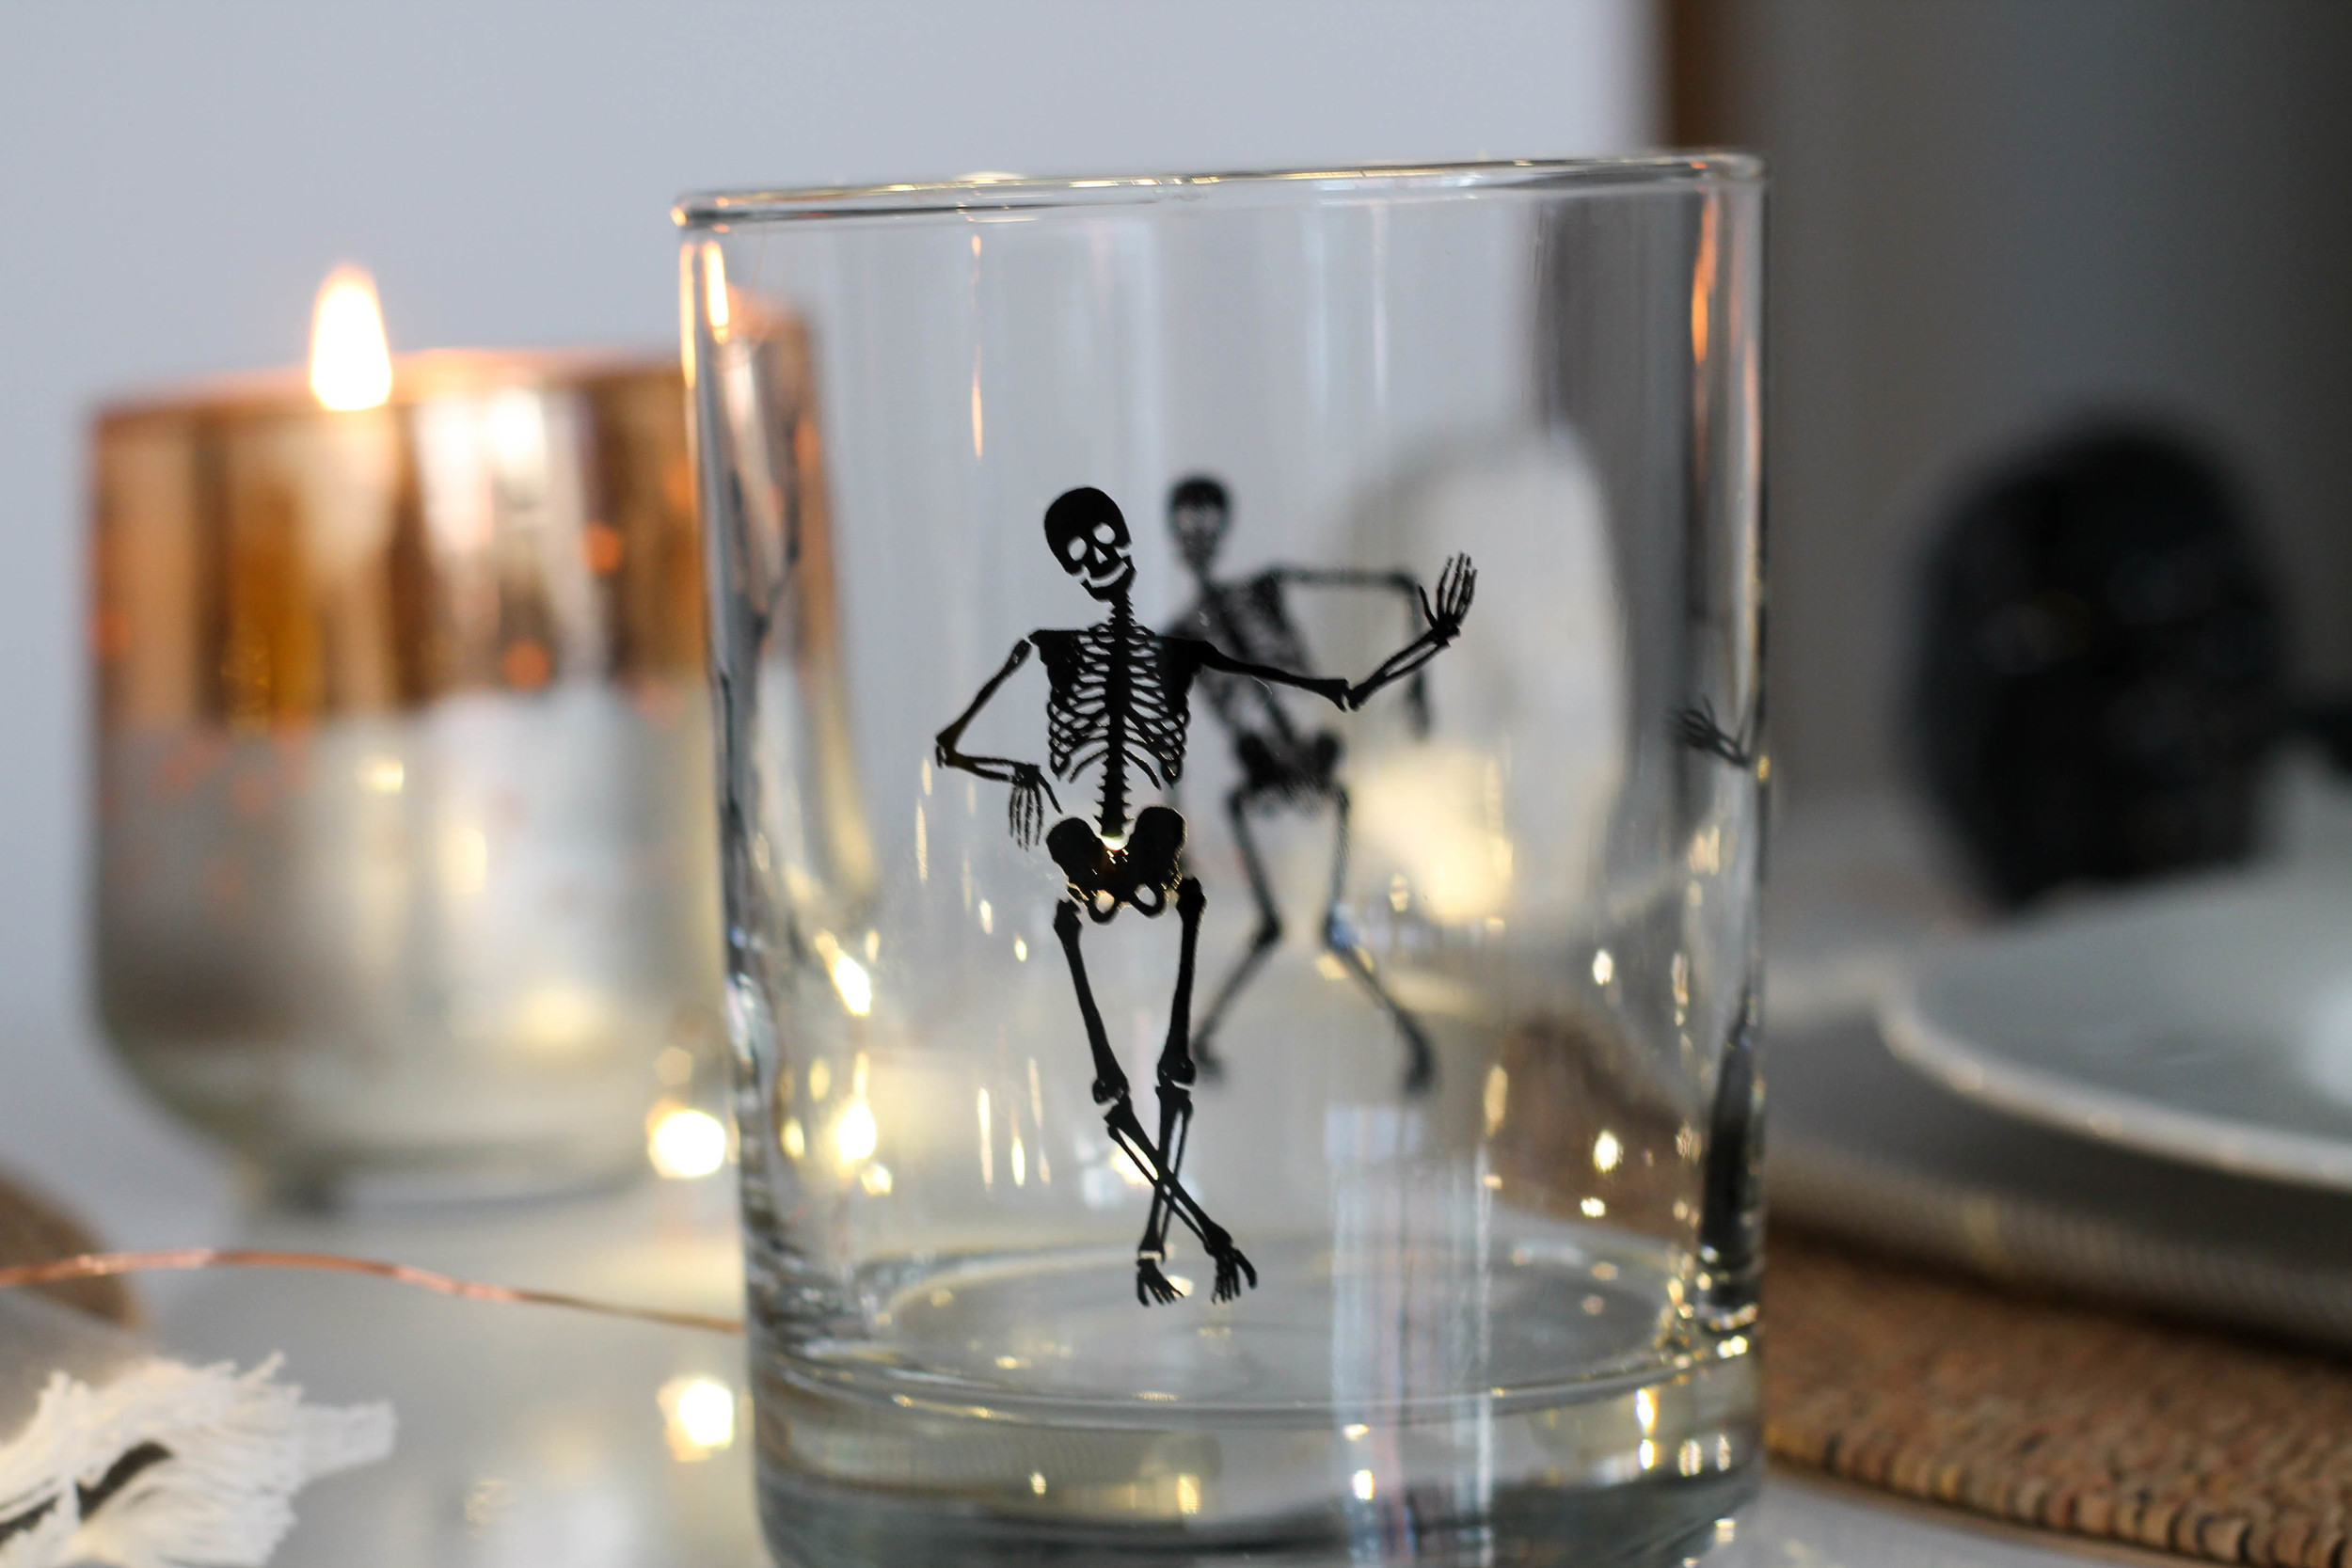 dancingskeleton (1 of 1).jpg